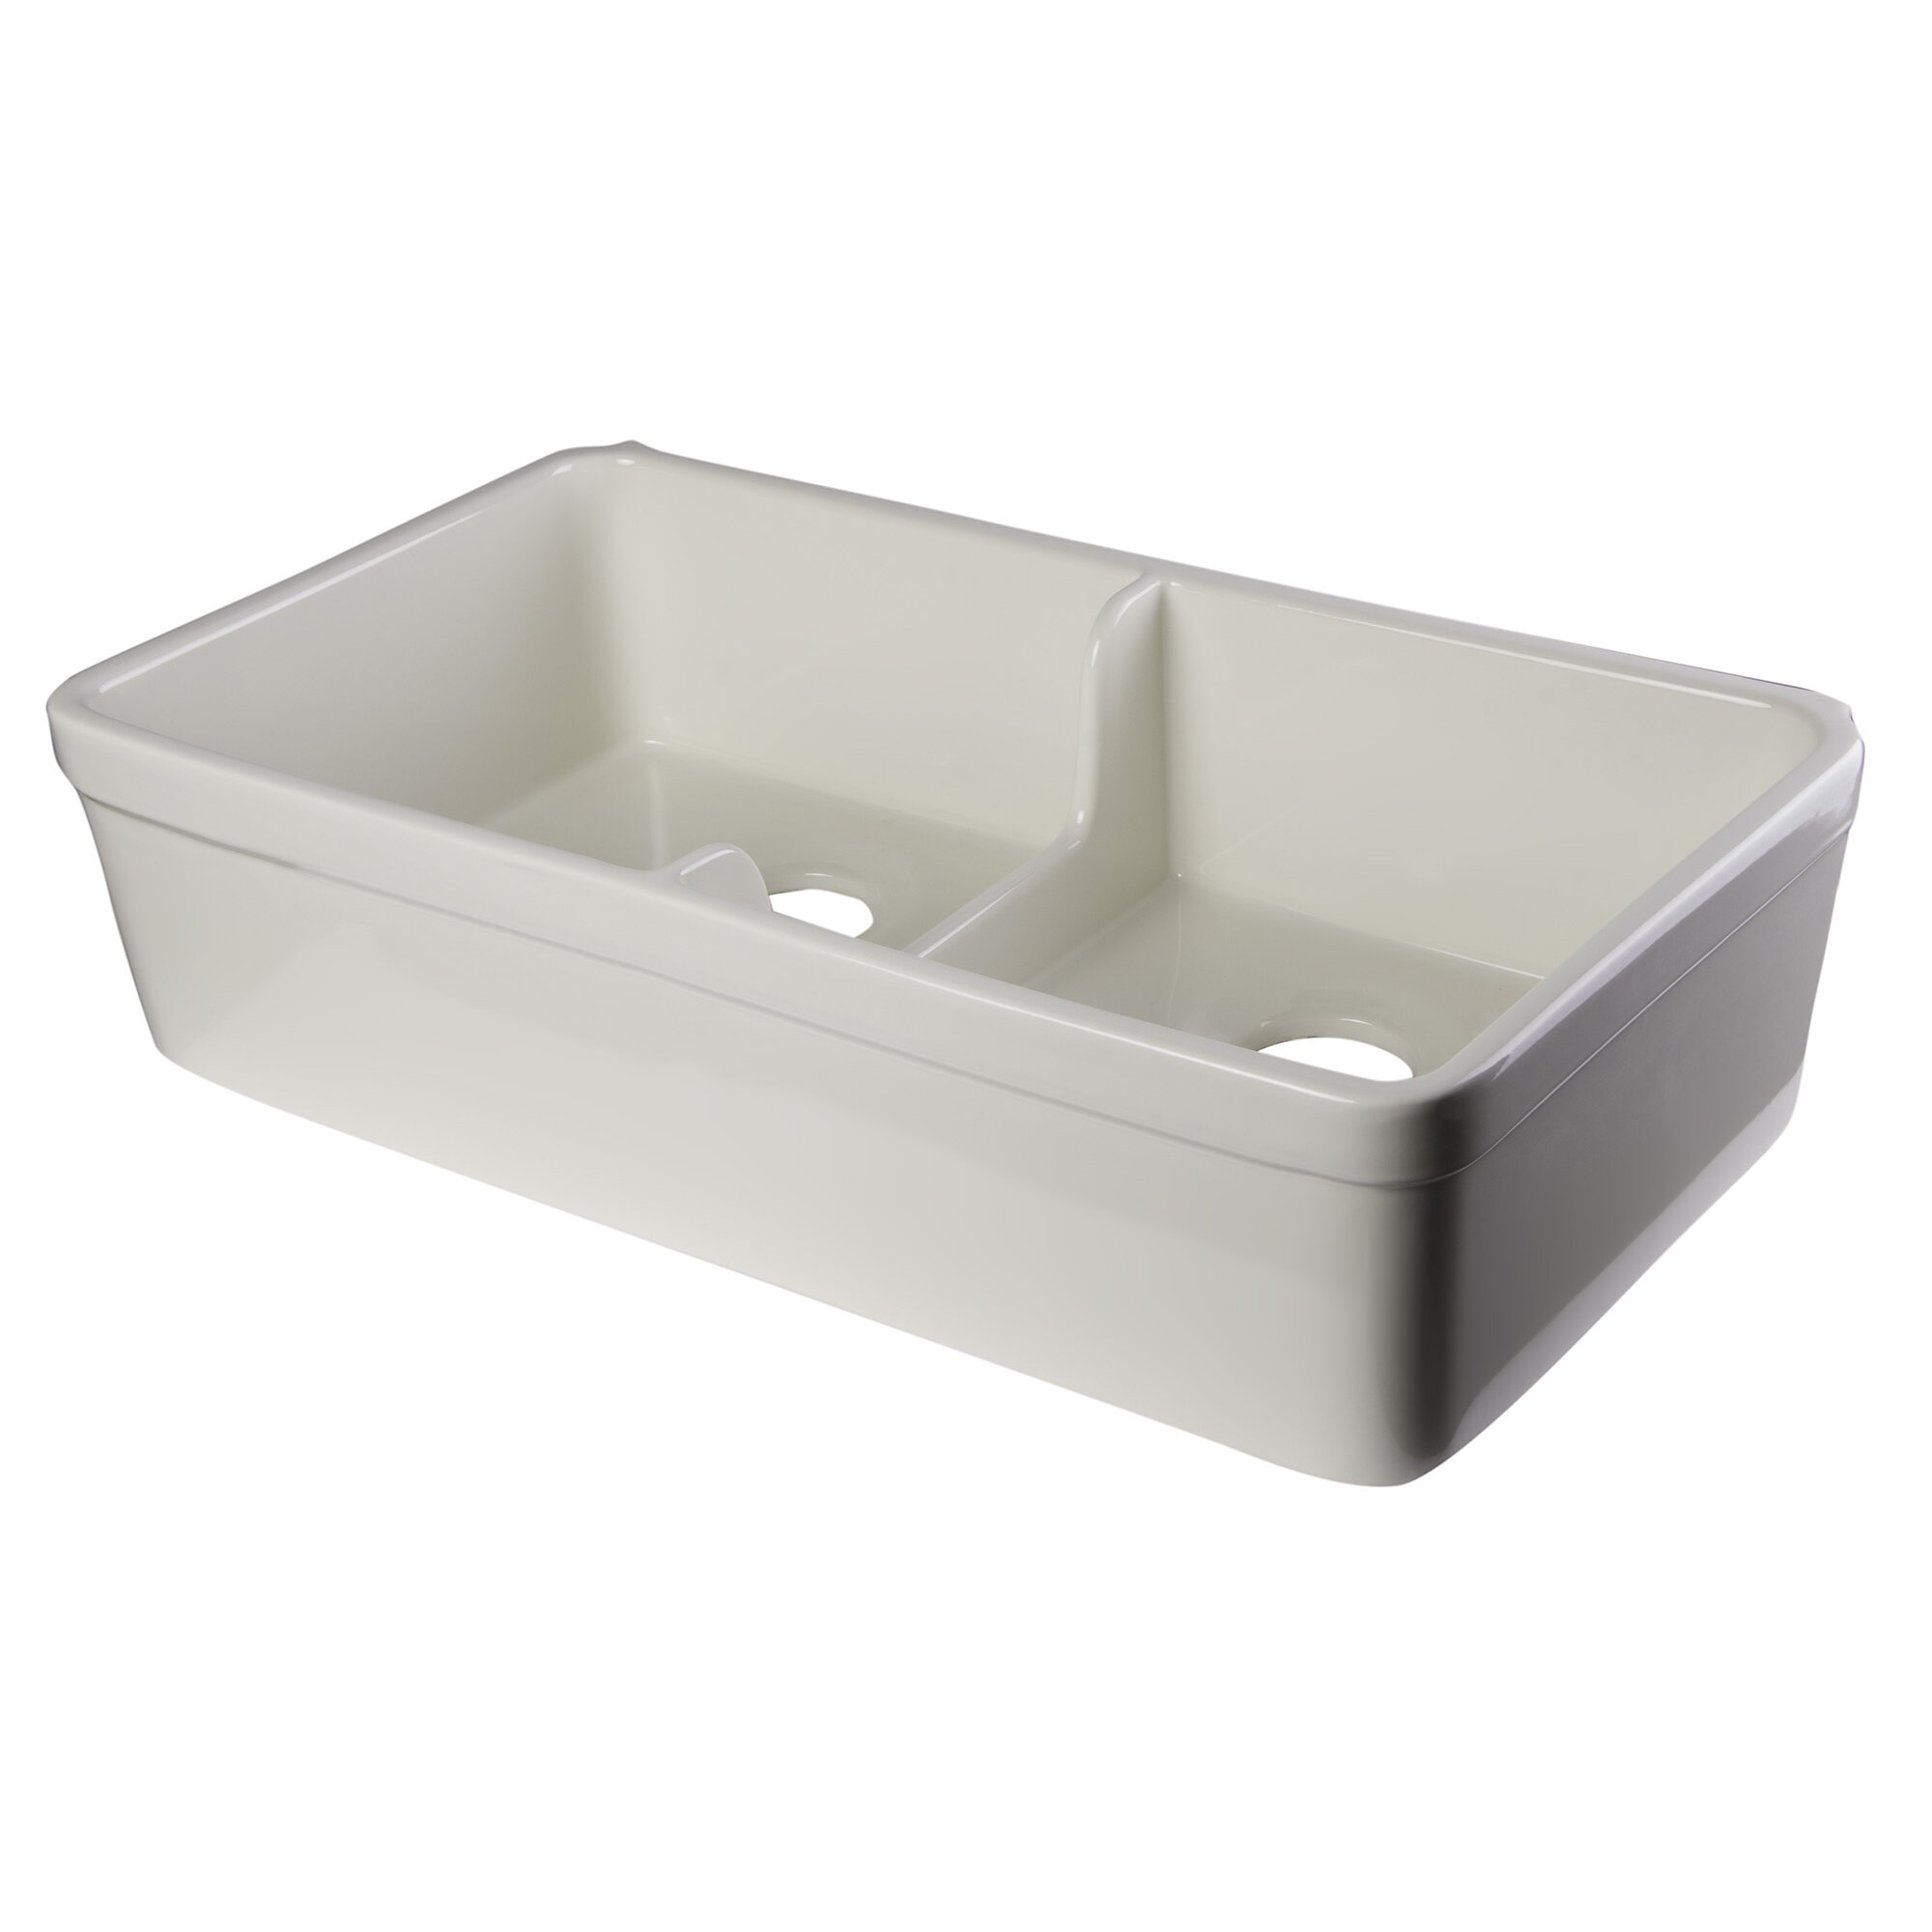 Alfi Brand 3175 X 1775 Short Wall Double Bowl